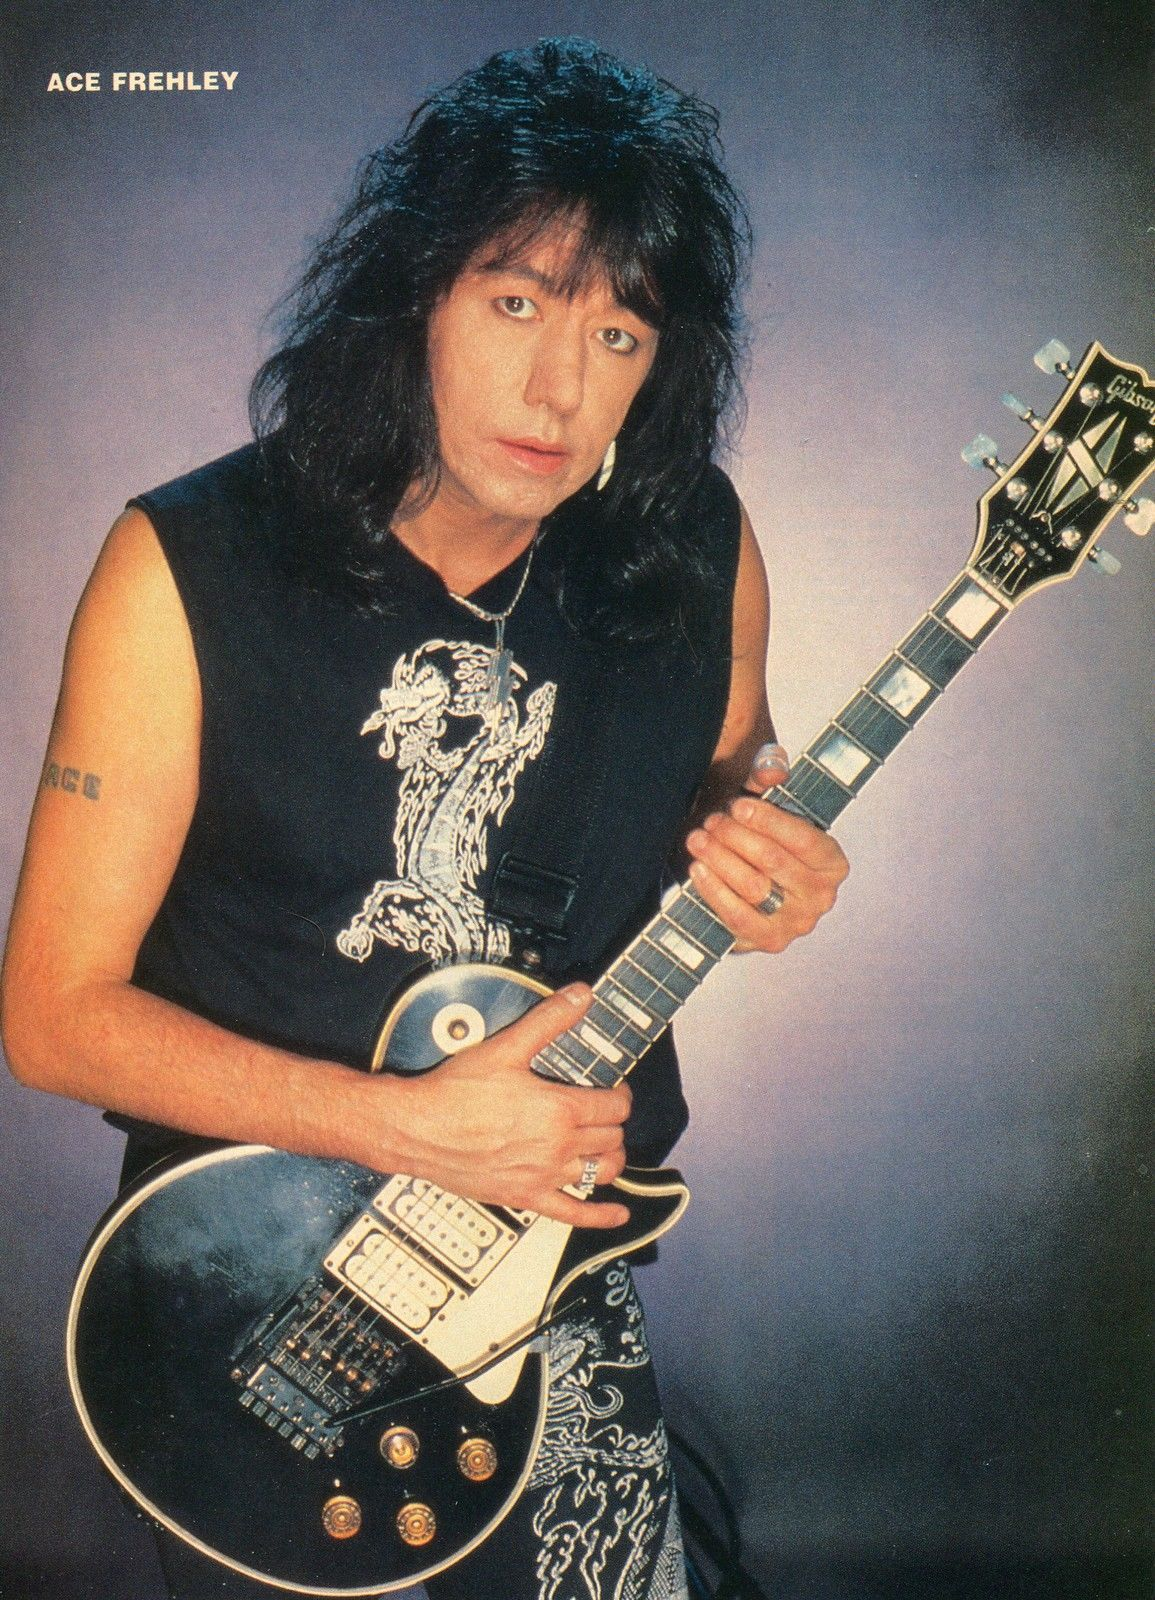 ACE FREHLEY PINUP CLIPPING 80's Gibson KISS | Ace frehley ...